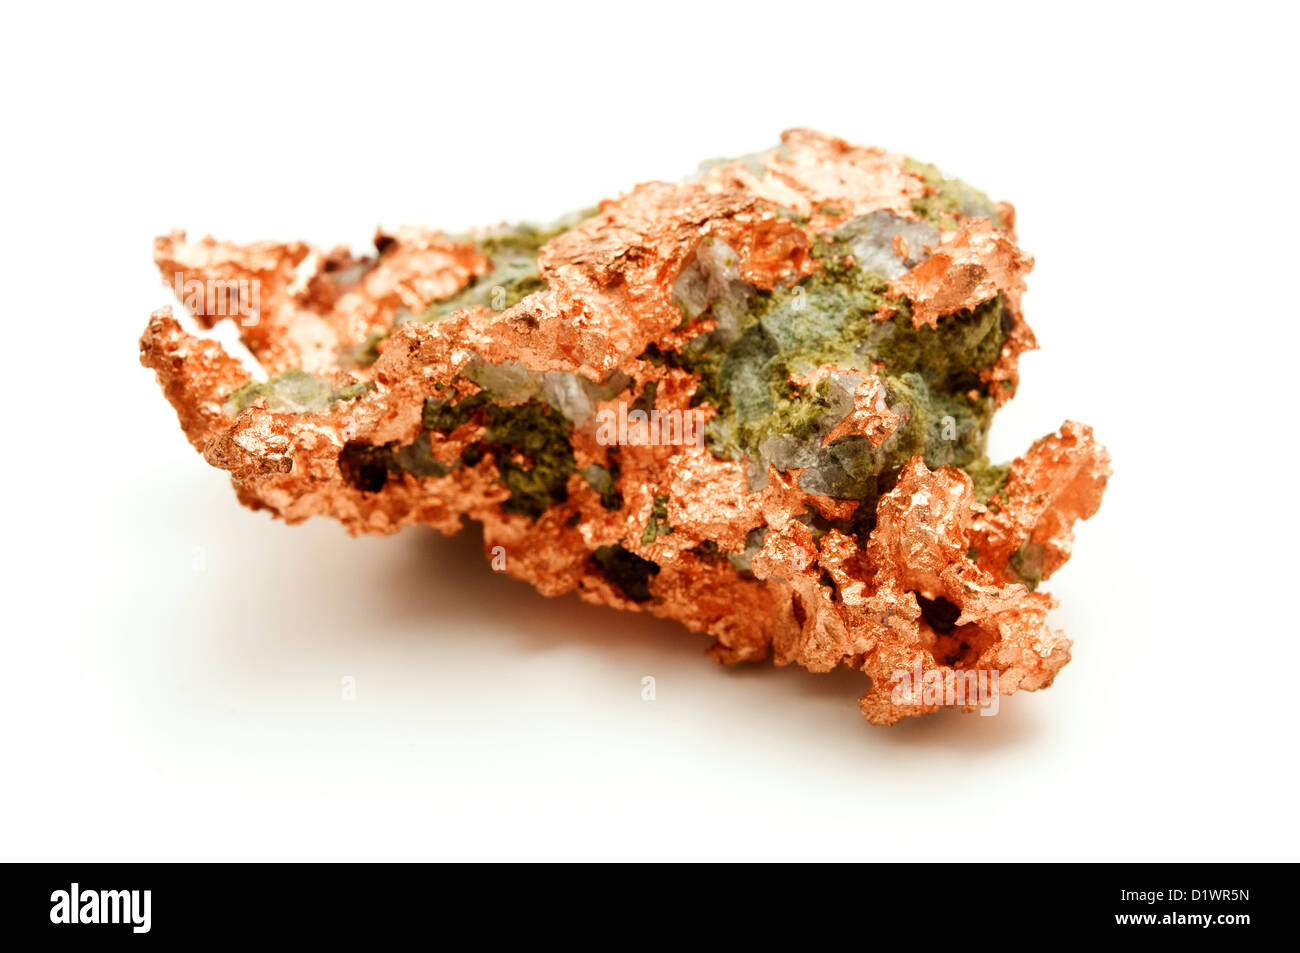 Native copper on a white background - Stock Image